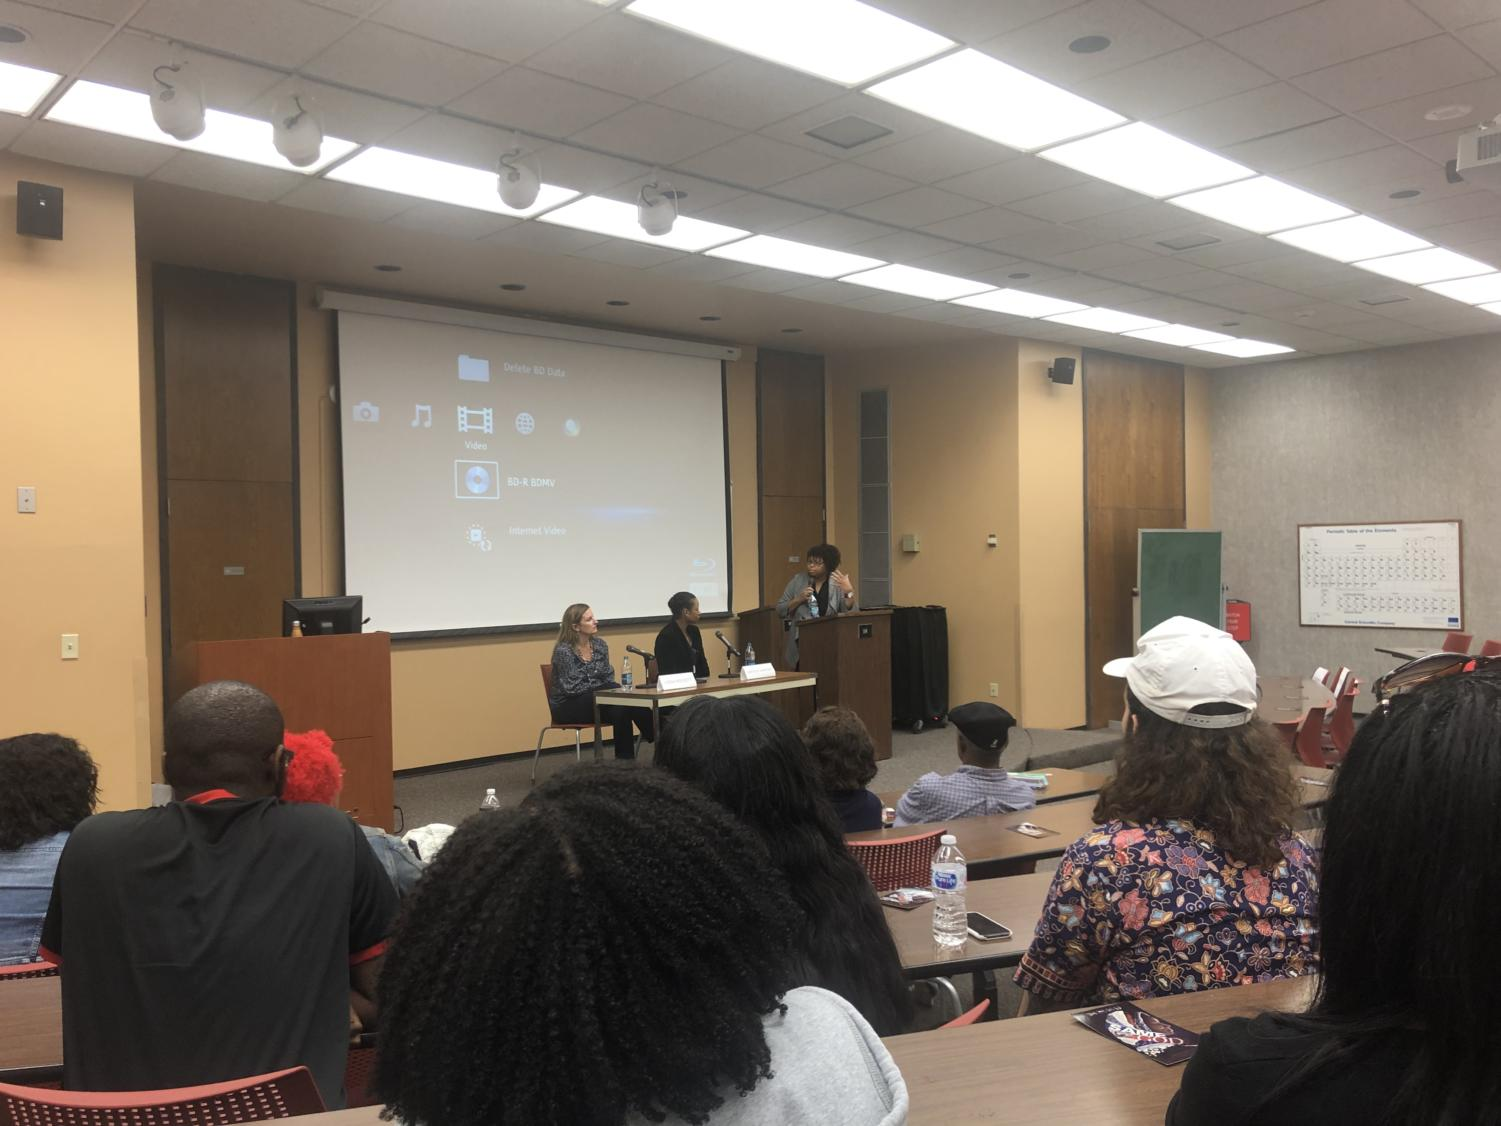 After the screening of the documentary, 'Same God', director Linda Midgett and subject Larycia Hawkins provide a Q&A for Loyola students. The film screening and Q&A was moderatred by African-American studies director Trimiko Melancon. Photo credit: Shamaria Bell